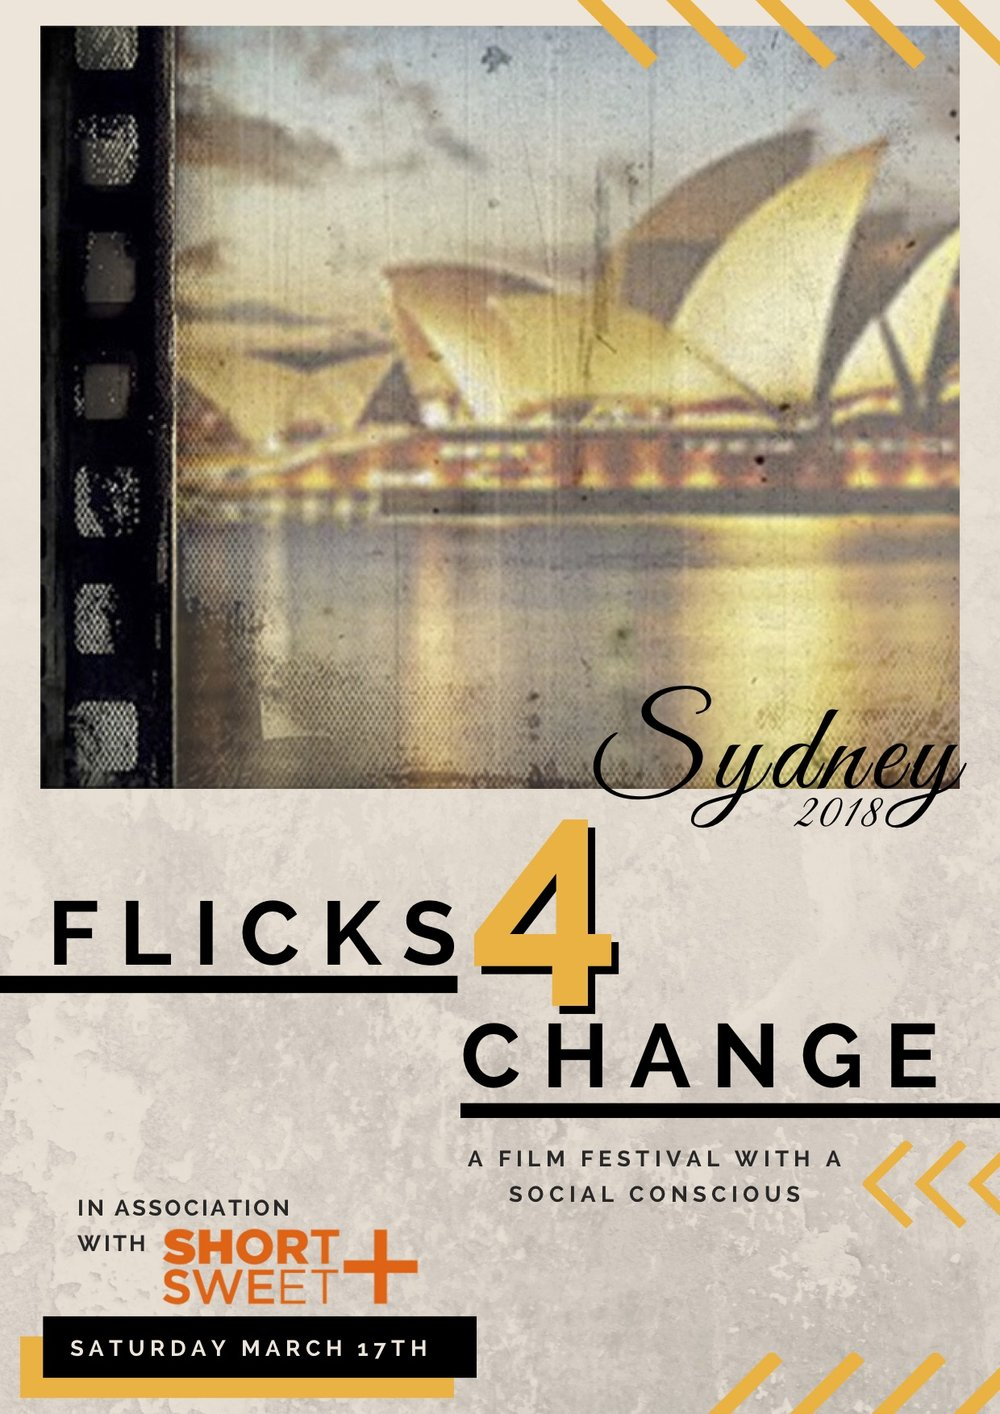 F4C Goes International! - In association with Short + Sweet, Flicks4Change goes International to bring change all over the globe.